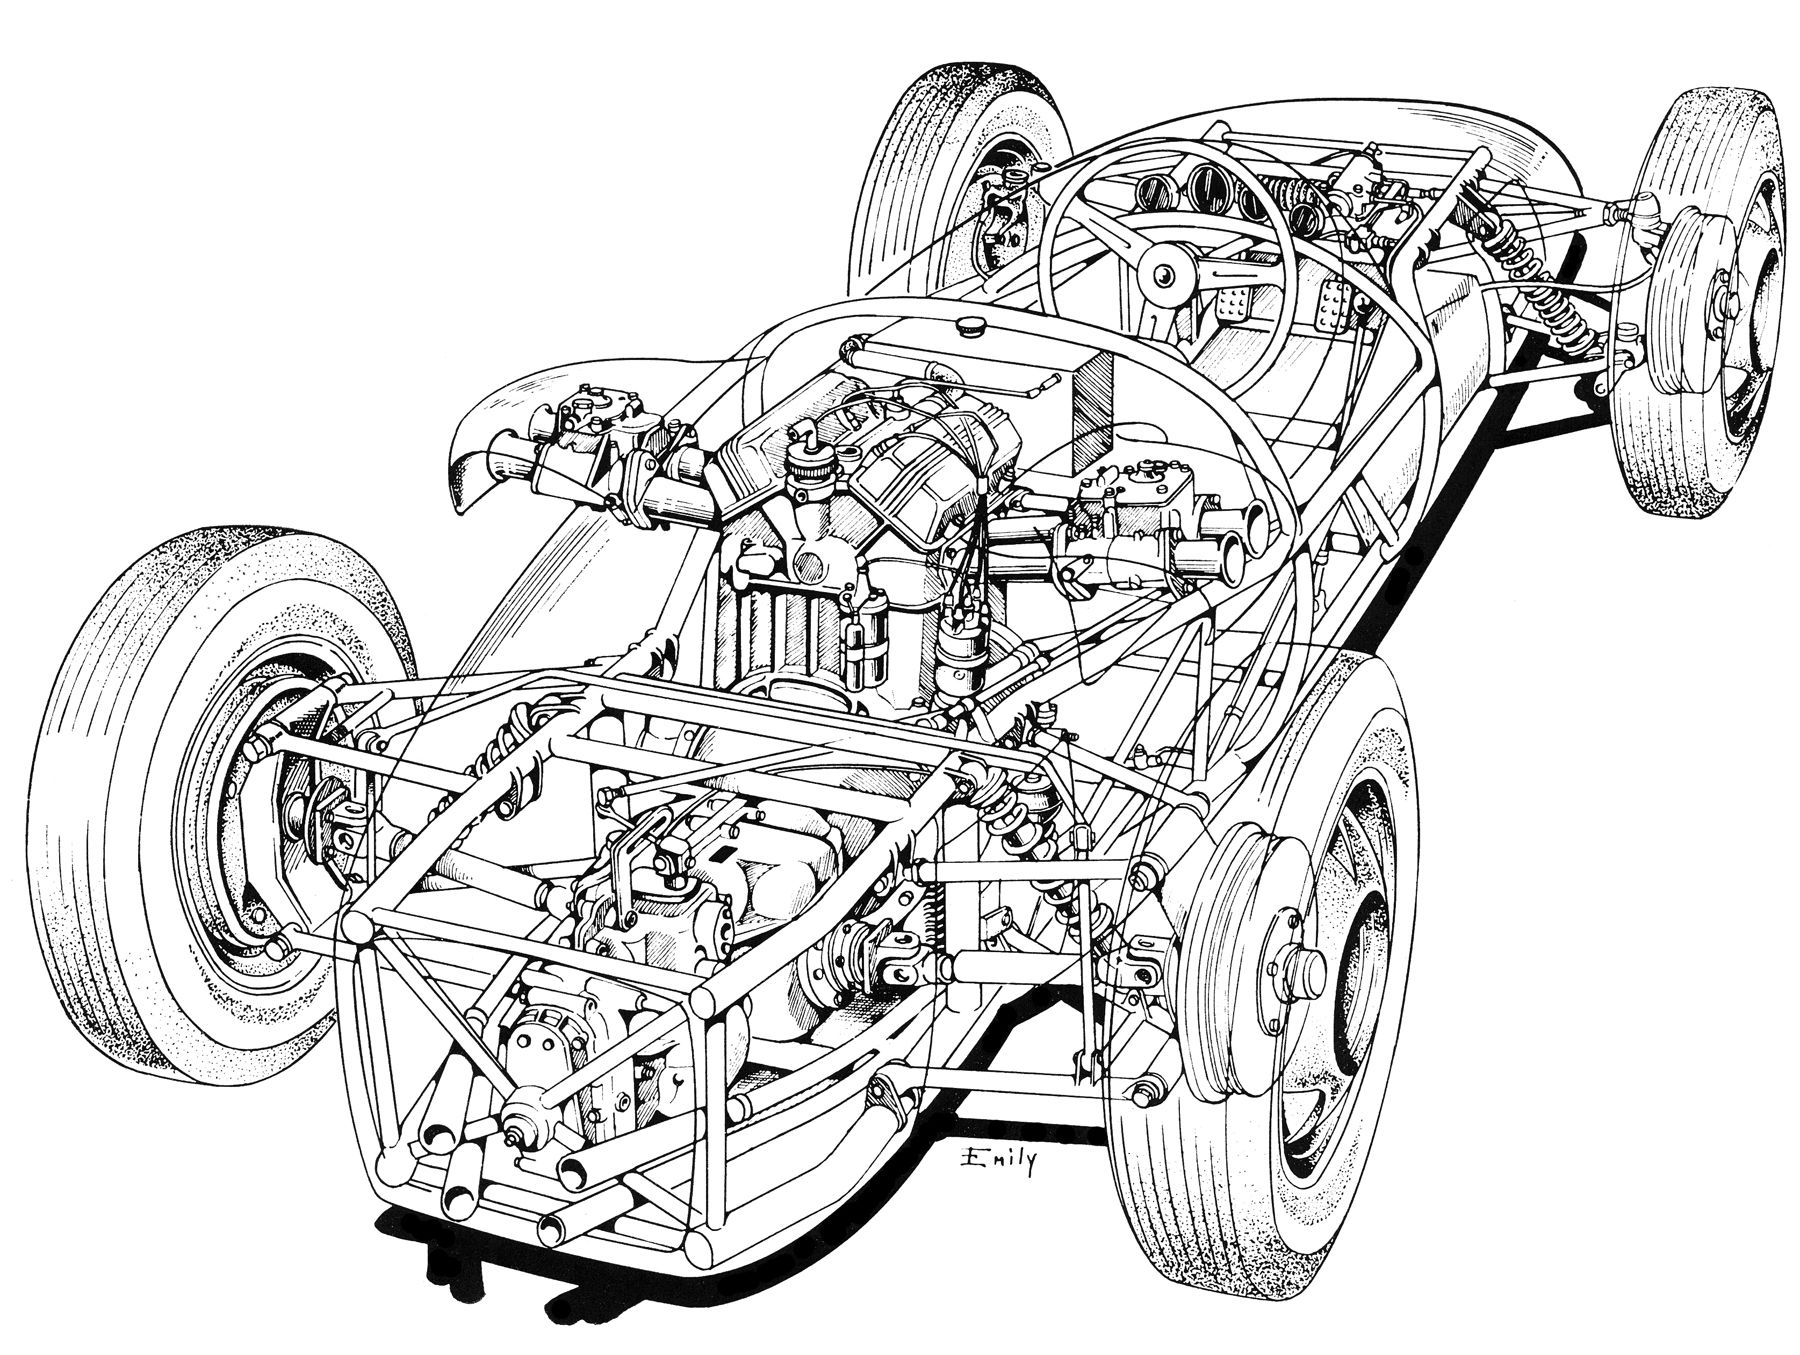 the cutaway drawing and its artists page 72 the nostalgia forum 2003 Ford GT40 posted image